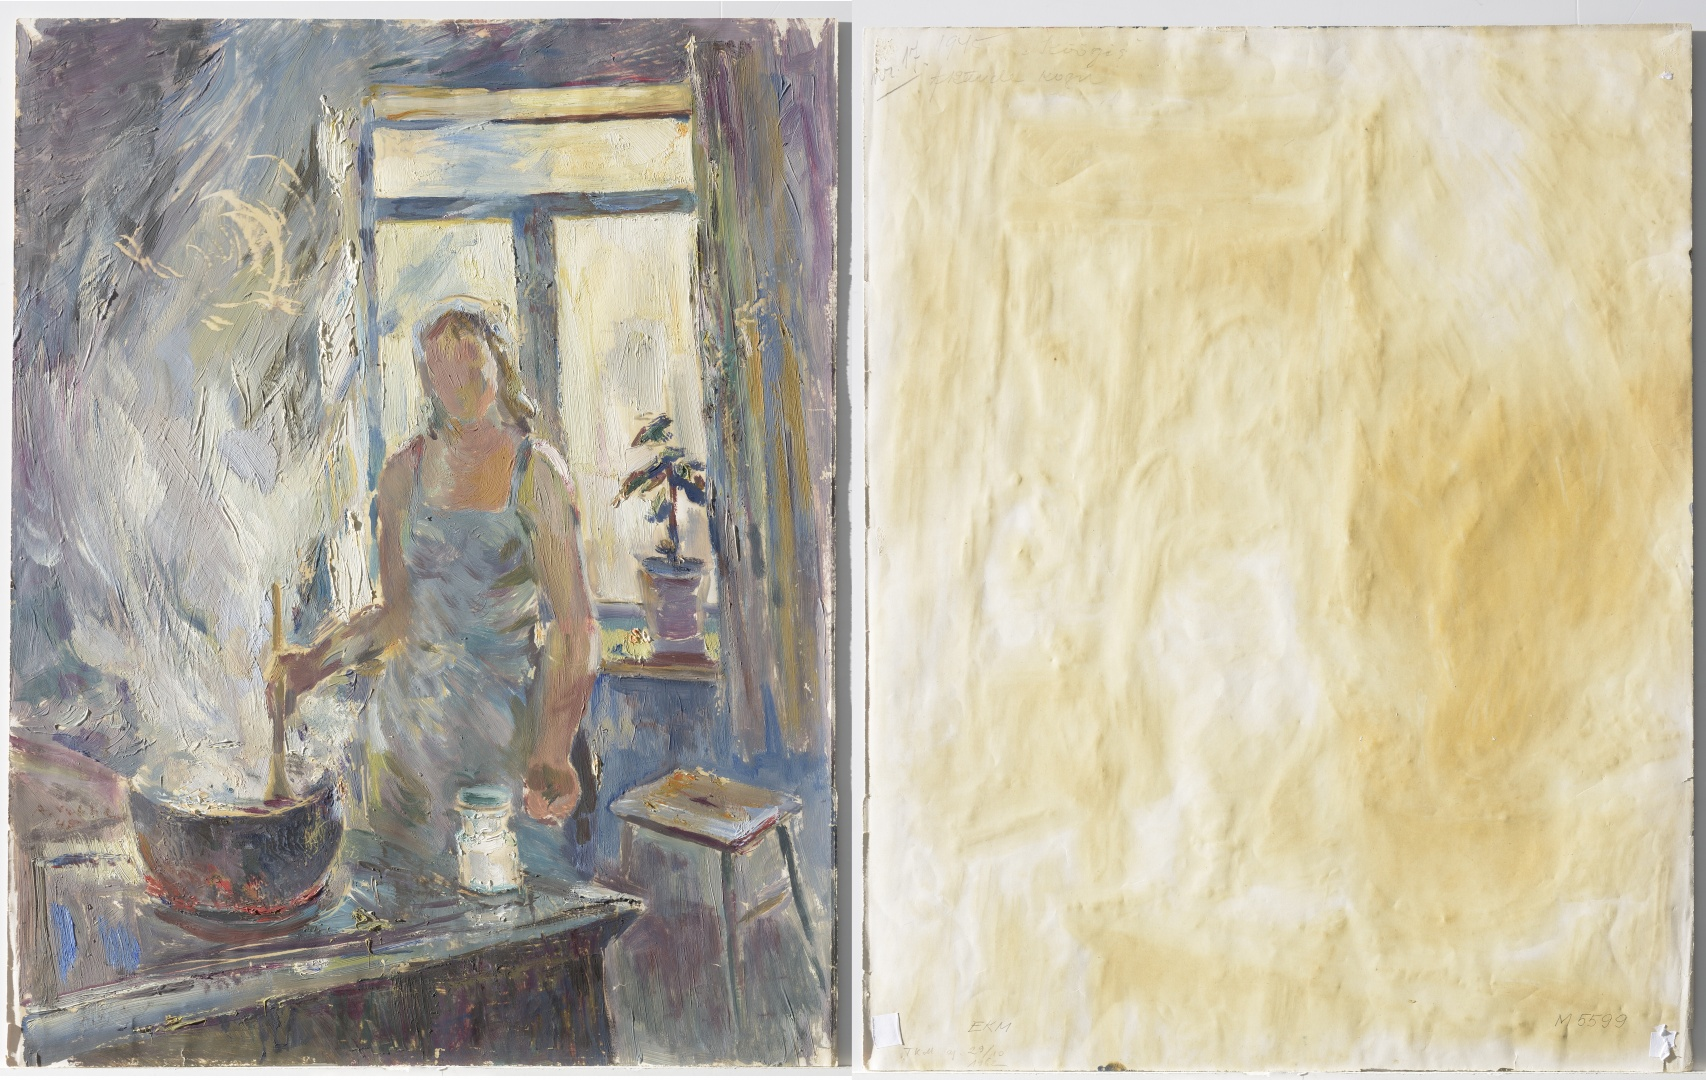 fig 7. A. Vabbe In the kitchen, 1945. EKM M 5599. Front and back sides of the painting. The paper (0.13mm thick) that contains lignin has been grounded with chalky layer on both, recto- and verso-sides.. The oil paint has adhered well on paper.